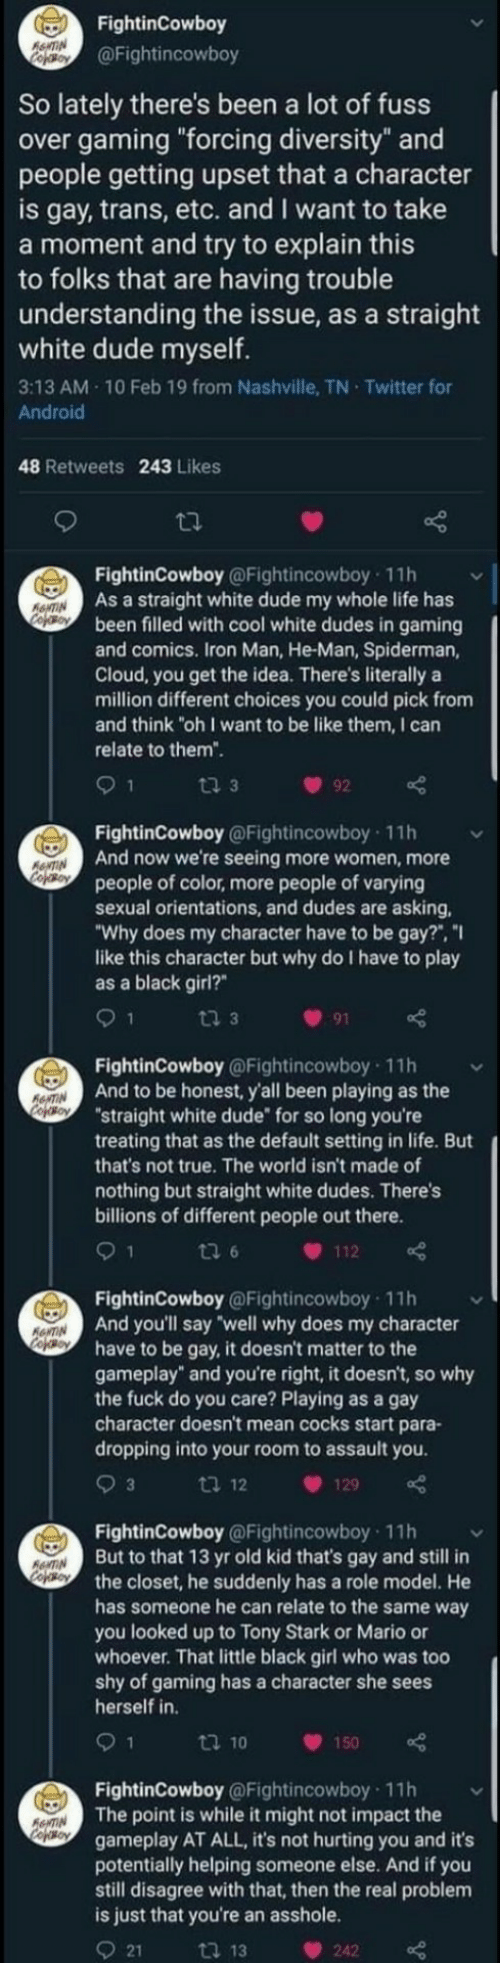 "assault: FightinCowboy  RewTIN  Cefoy  @Fightincowboy  So lately there's been a lot of fuss  over gaming ""forcing diversity"" and  people getting upset that a character  is gay, trans, etc. and I want to take  a moment and try to explain this  to folks that are having trouble  understanding the issue, as a straight  white dude myself.  3:13 AM 10 Feb 19 from Nashville, TN Twitter for  Android  48 Retweets 243 Likes  FightinCowboy @Fightincowboy 11h  As a straight white dude my whole life has  been filled with cool white dudes in gaming  and comics. Iron Man, He-Man, Spiderman,  Cloud, you get the idea. There's literally a  million different choices you could pick from  and think ""oh I want to be like them, I can  ANTIN  Cooy  relate to them"".  ti 3  92  FightinCowboy @Fightincowboy 11h  And now we're seeing more women, more  people of color, more people of varying  sexual orientations, and dudes are asking  ""Why does my character have to be gay?"", ""I  like this character but why do I have to play  as a black girl?  ANTIN  CofoBoy  9 1  ti 3  91  FightinCowboy @Fightincowboy 11h  And to be honest, y'all been playing as the  ""straight white dude for so long you're  treating that as the default setting in life. But  that's not true. The world isn't made of  RNTIN  CopOBoY  nothing but straight white dudes. There's  billions of different people out there.  1  ti 6  112  FightinCowboy @Fightincowboy 11h  And you'll say well why does my character  have to be gay, it doesn't matter to the  gameplay"" and you're right, it doesn't, so why  the fuck do you care? Playing as a gay  character doesn't mean cocks start para-  dropping into your room to assault you  ANTIN  cofeo  3  ti 12  129  FightinCowboy @Fightincowboy 11h  But to that 13 yr old kid that's gay and still in  the closet, he suddenly has a role model. He  has someone he can relate to the same way  you looked up to Tony Stark or Mario or  whoever. That little black girl who was too  shy of gaming has a character she sees  herself in  AANTIN  Cojso  9 1  t 10  150  FightinCowboy @Fightincowboy 11h  The point is while it might not impact the  gameplay AT ALL, it's not hurting you and it's  potentially helping someone else. And if you  still disagree with that, then the real problem  is just that you're an asshole.  AeNTIN  Cofeso  21  ti 13  242"